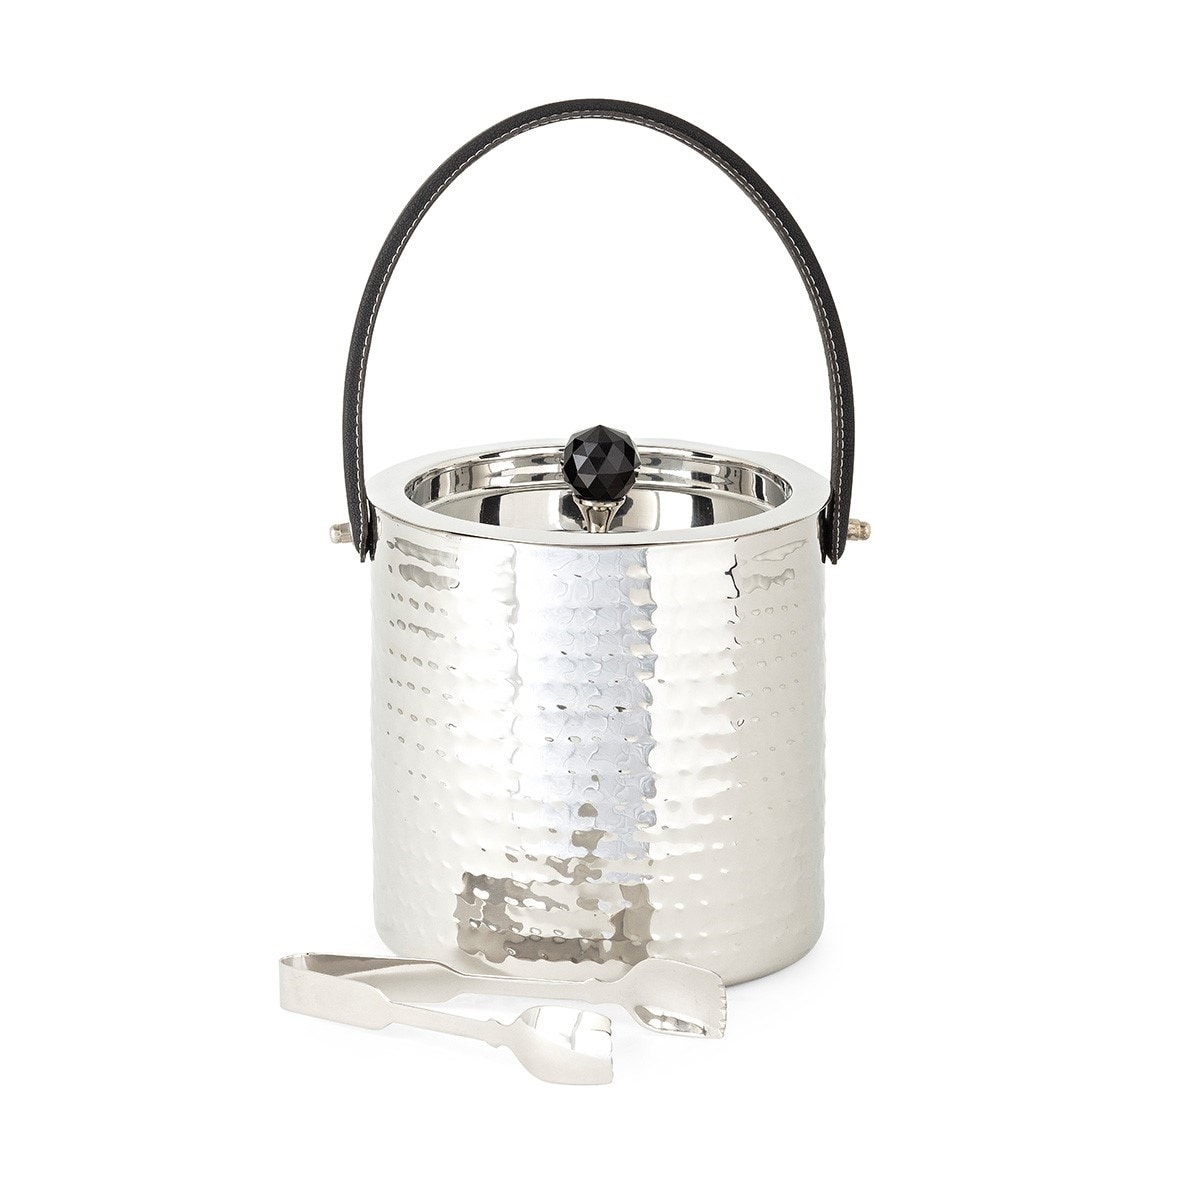 2pcs Insulated Cooler Ice Bucket Container for Storing Beverage Drink Fruits